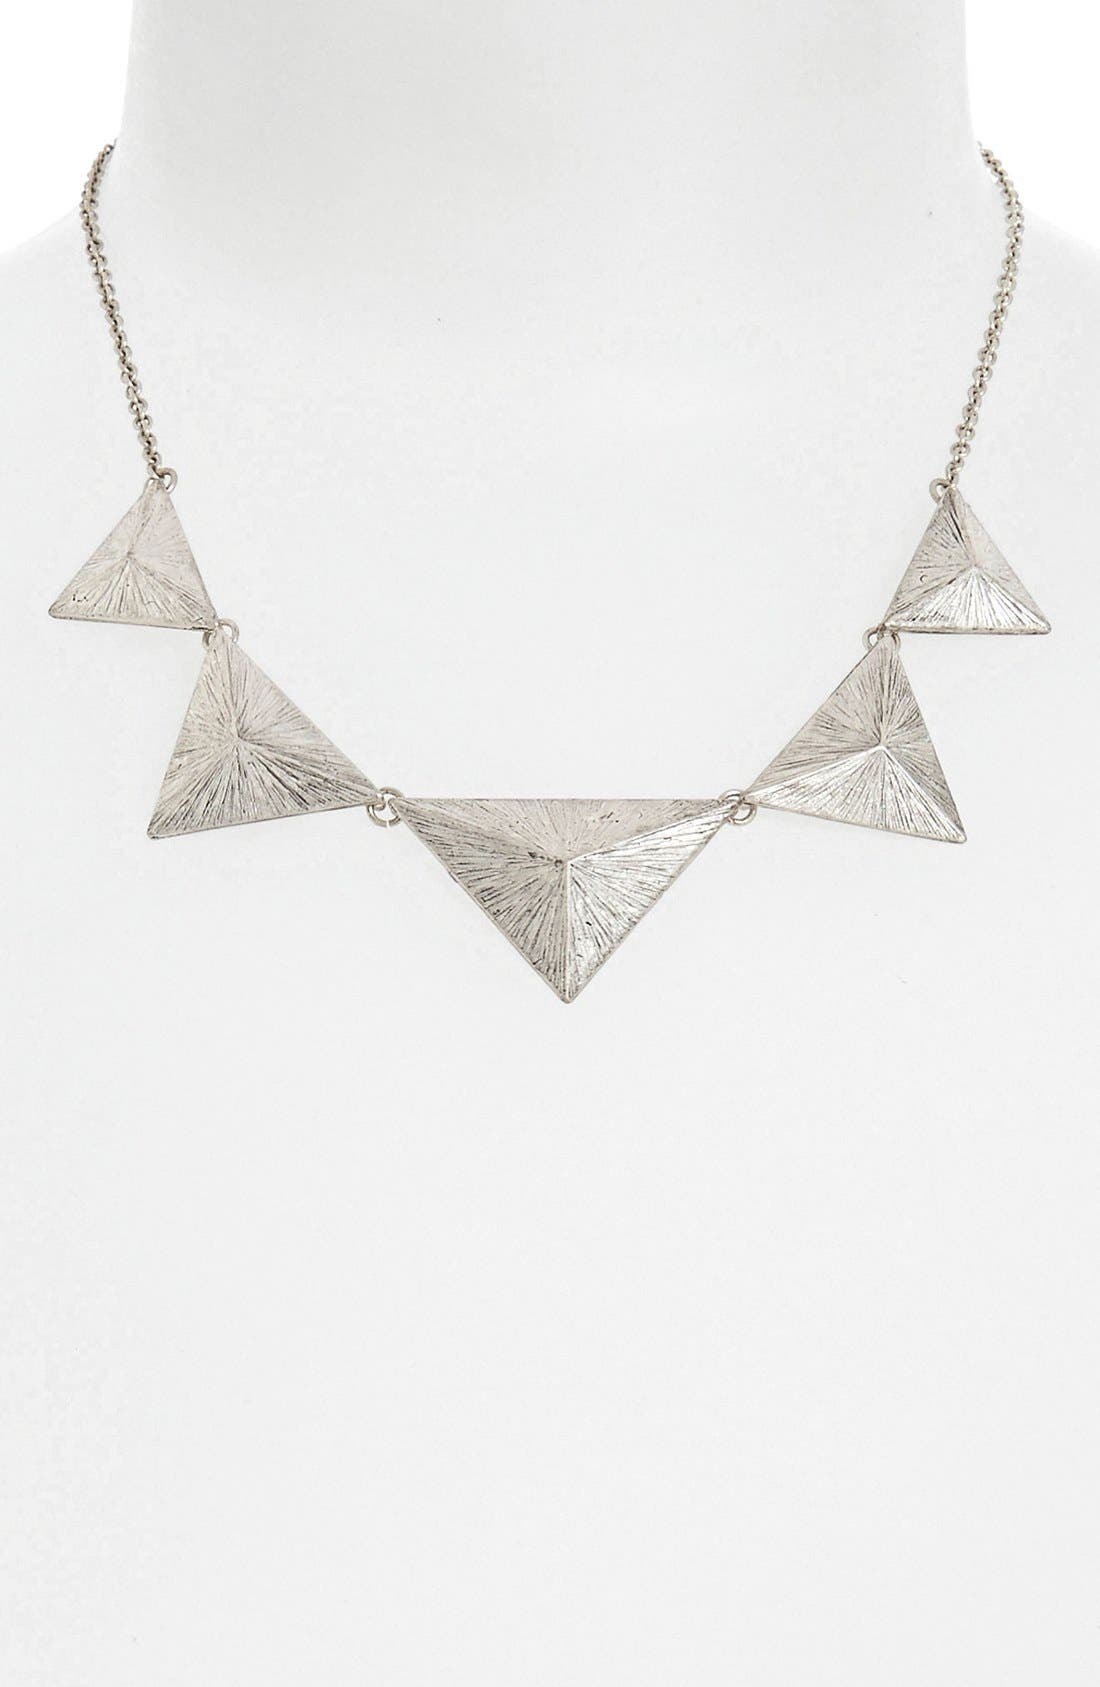 STEPHAN & CO. Pyramid Statement Necklace, Main, color, 020